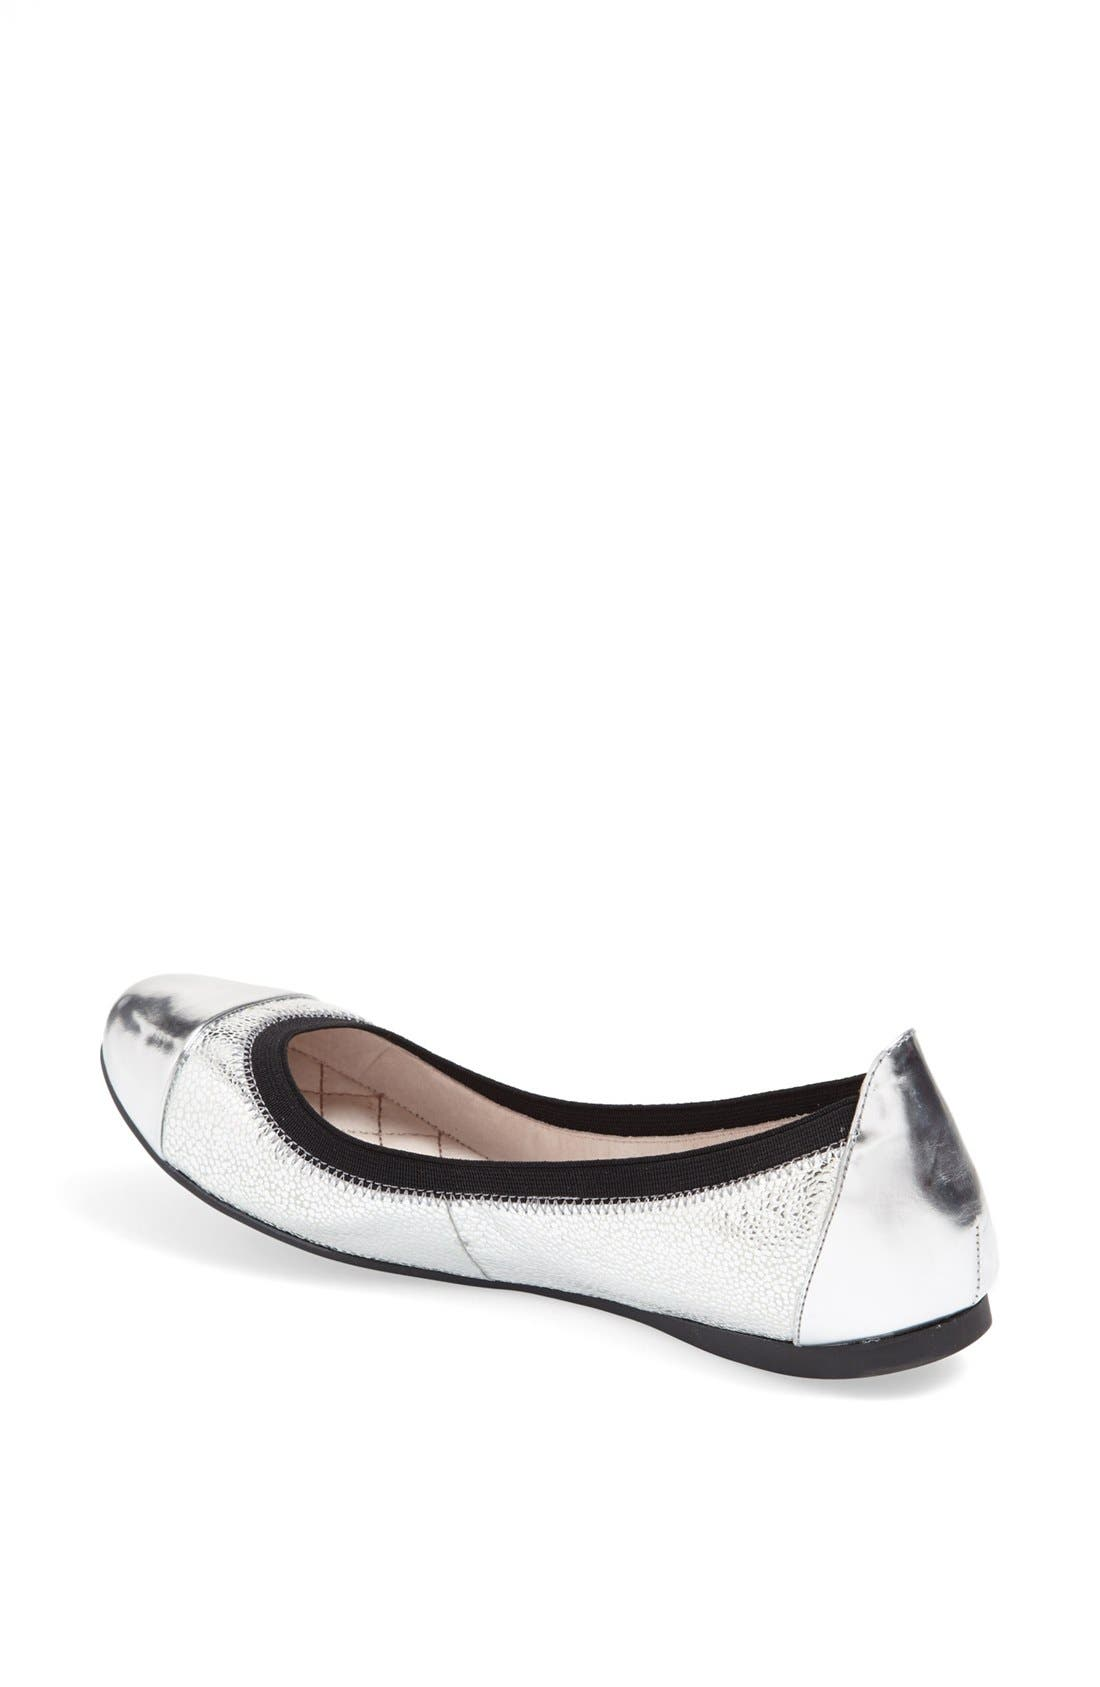 Alternate Image 2  - Vince Camuto 'Elisee' Leather Ballet Flat